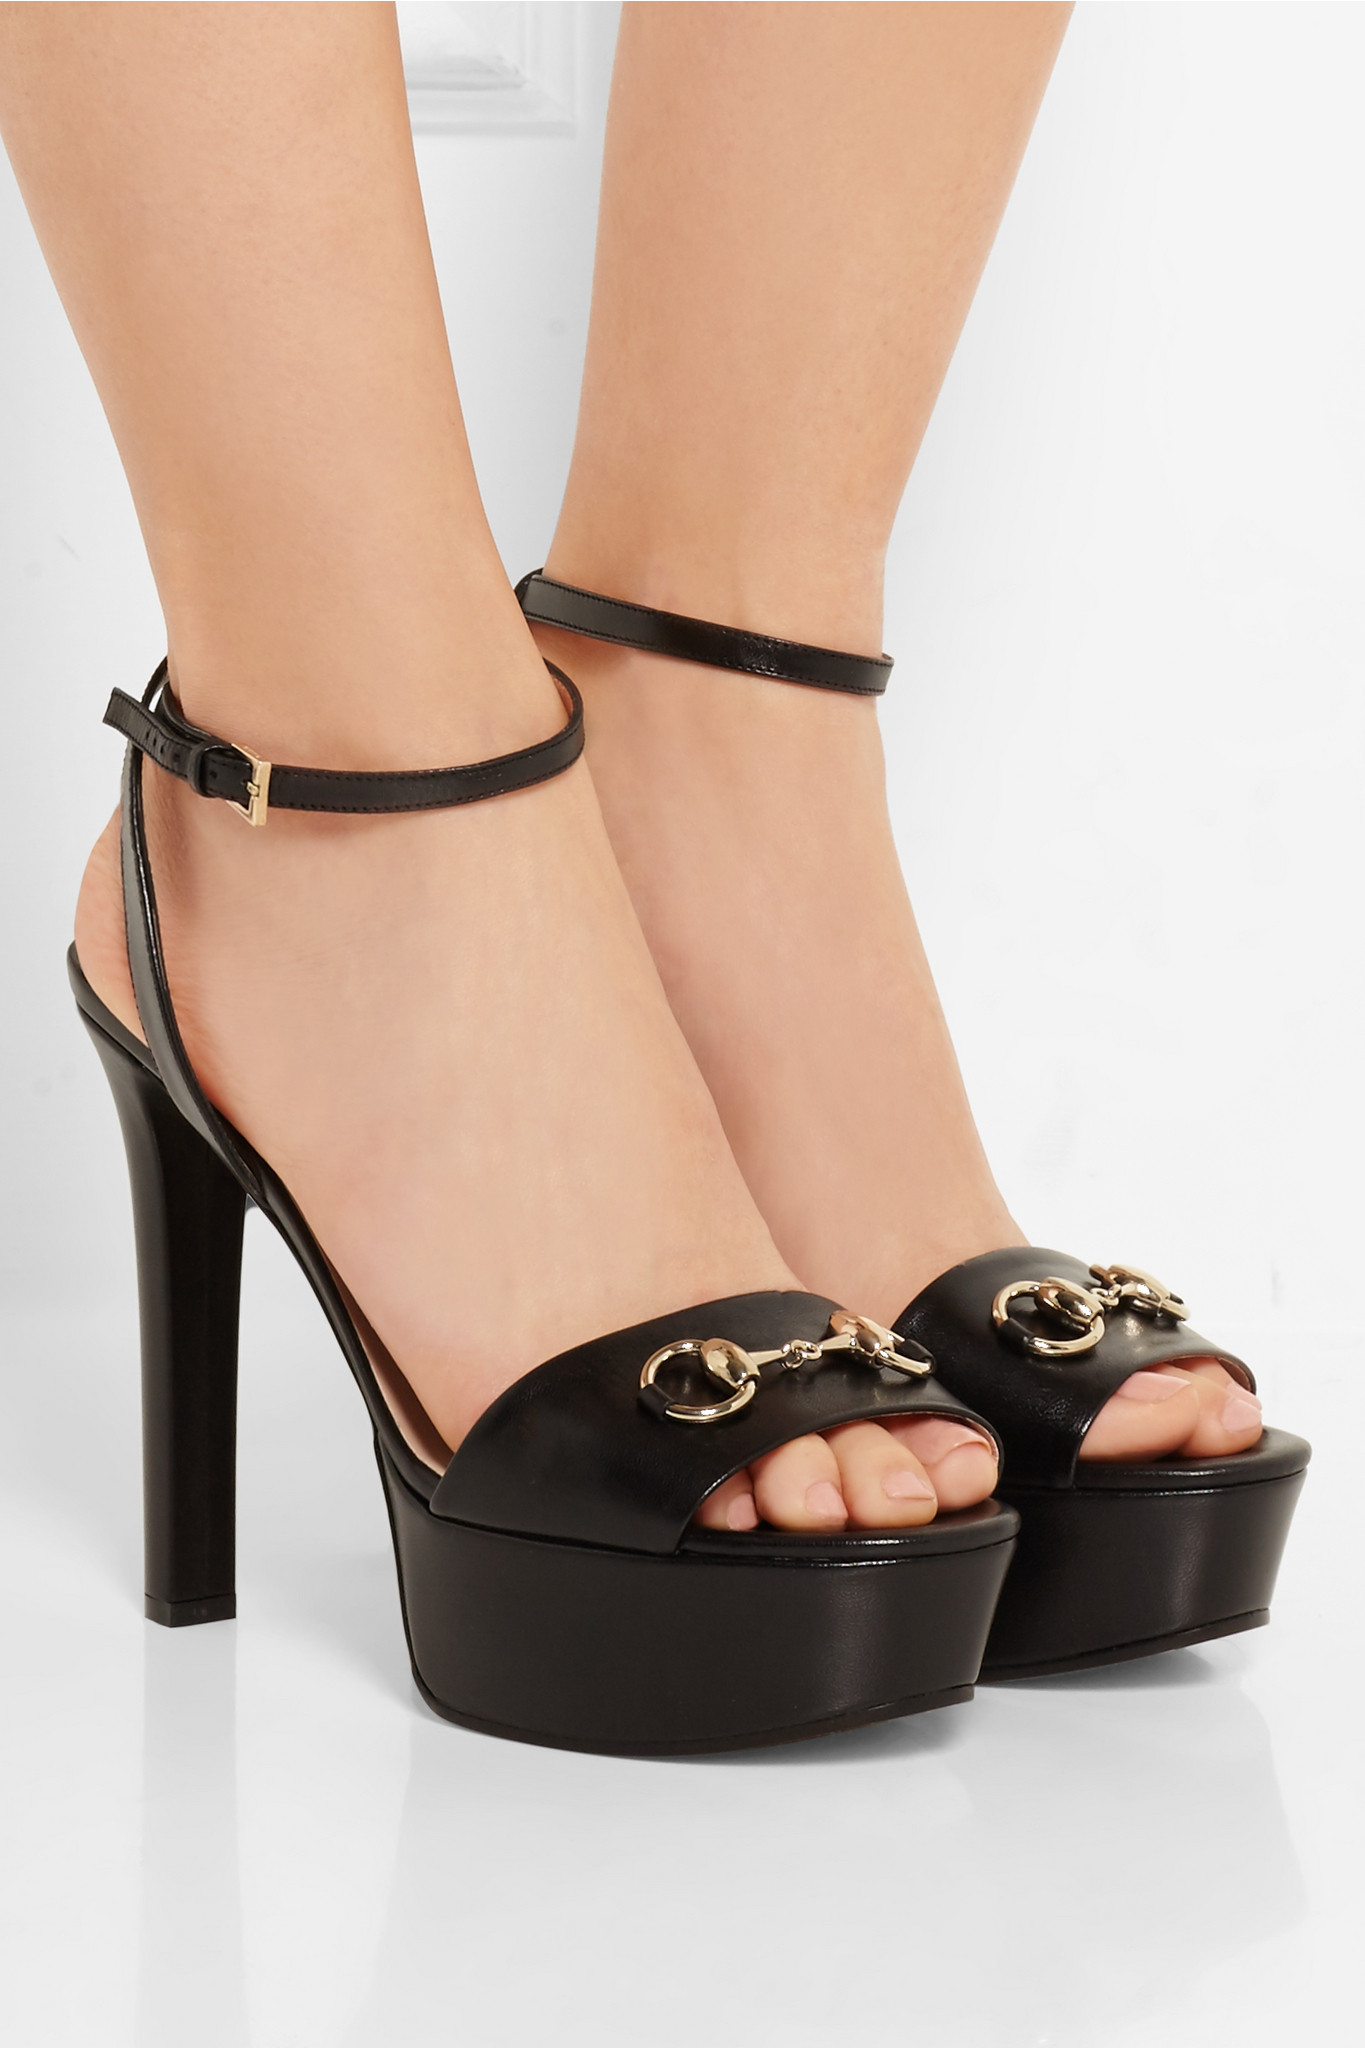 Gucci Horsebit Detailed Leather Platform Sandals In Black